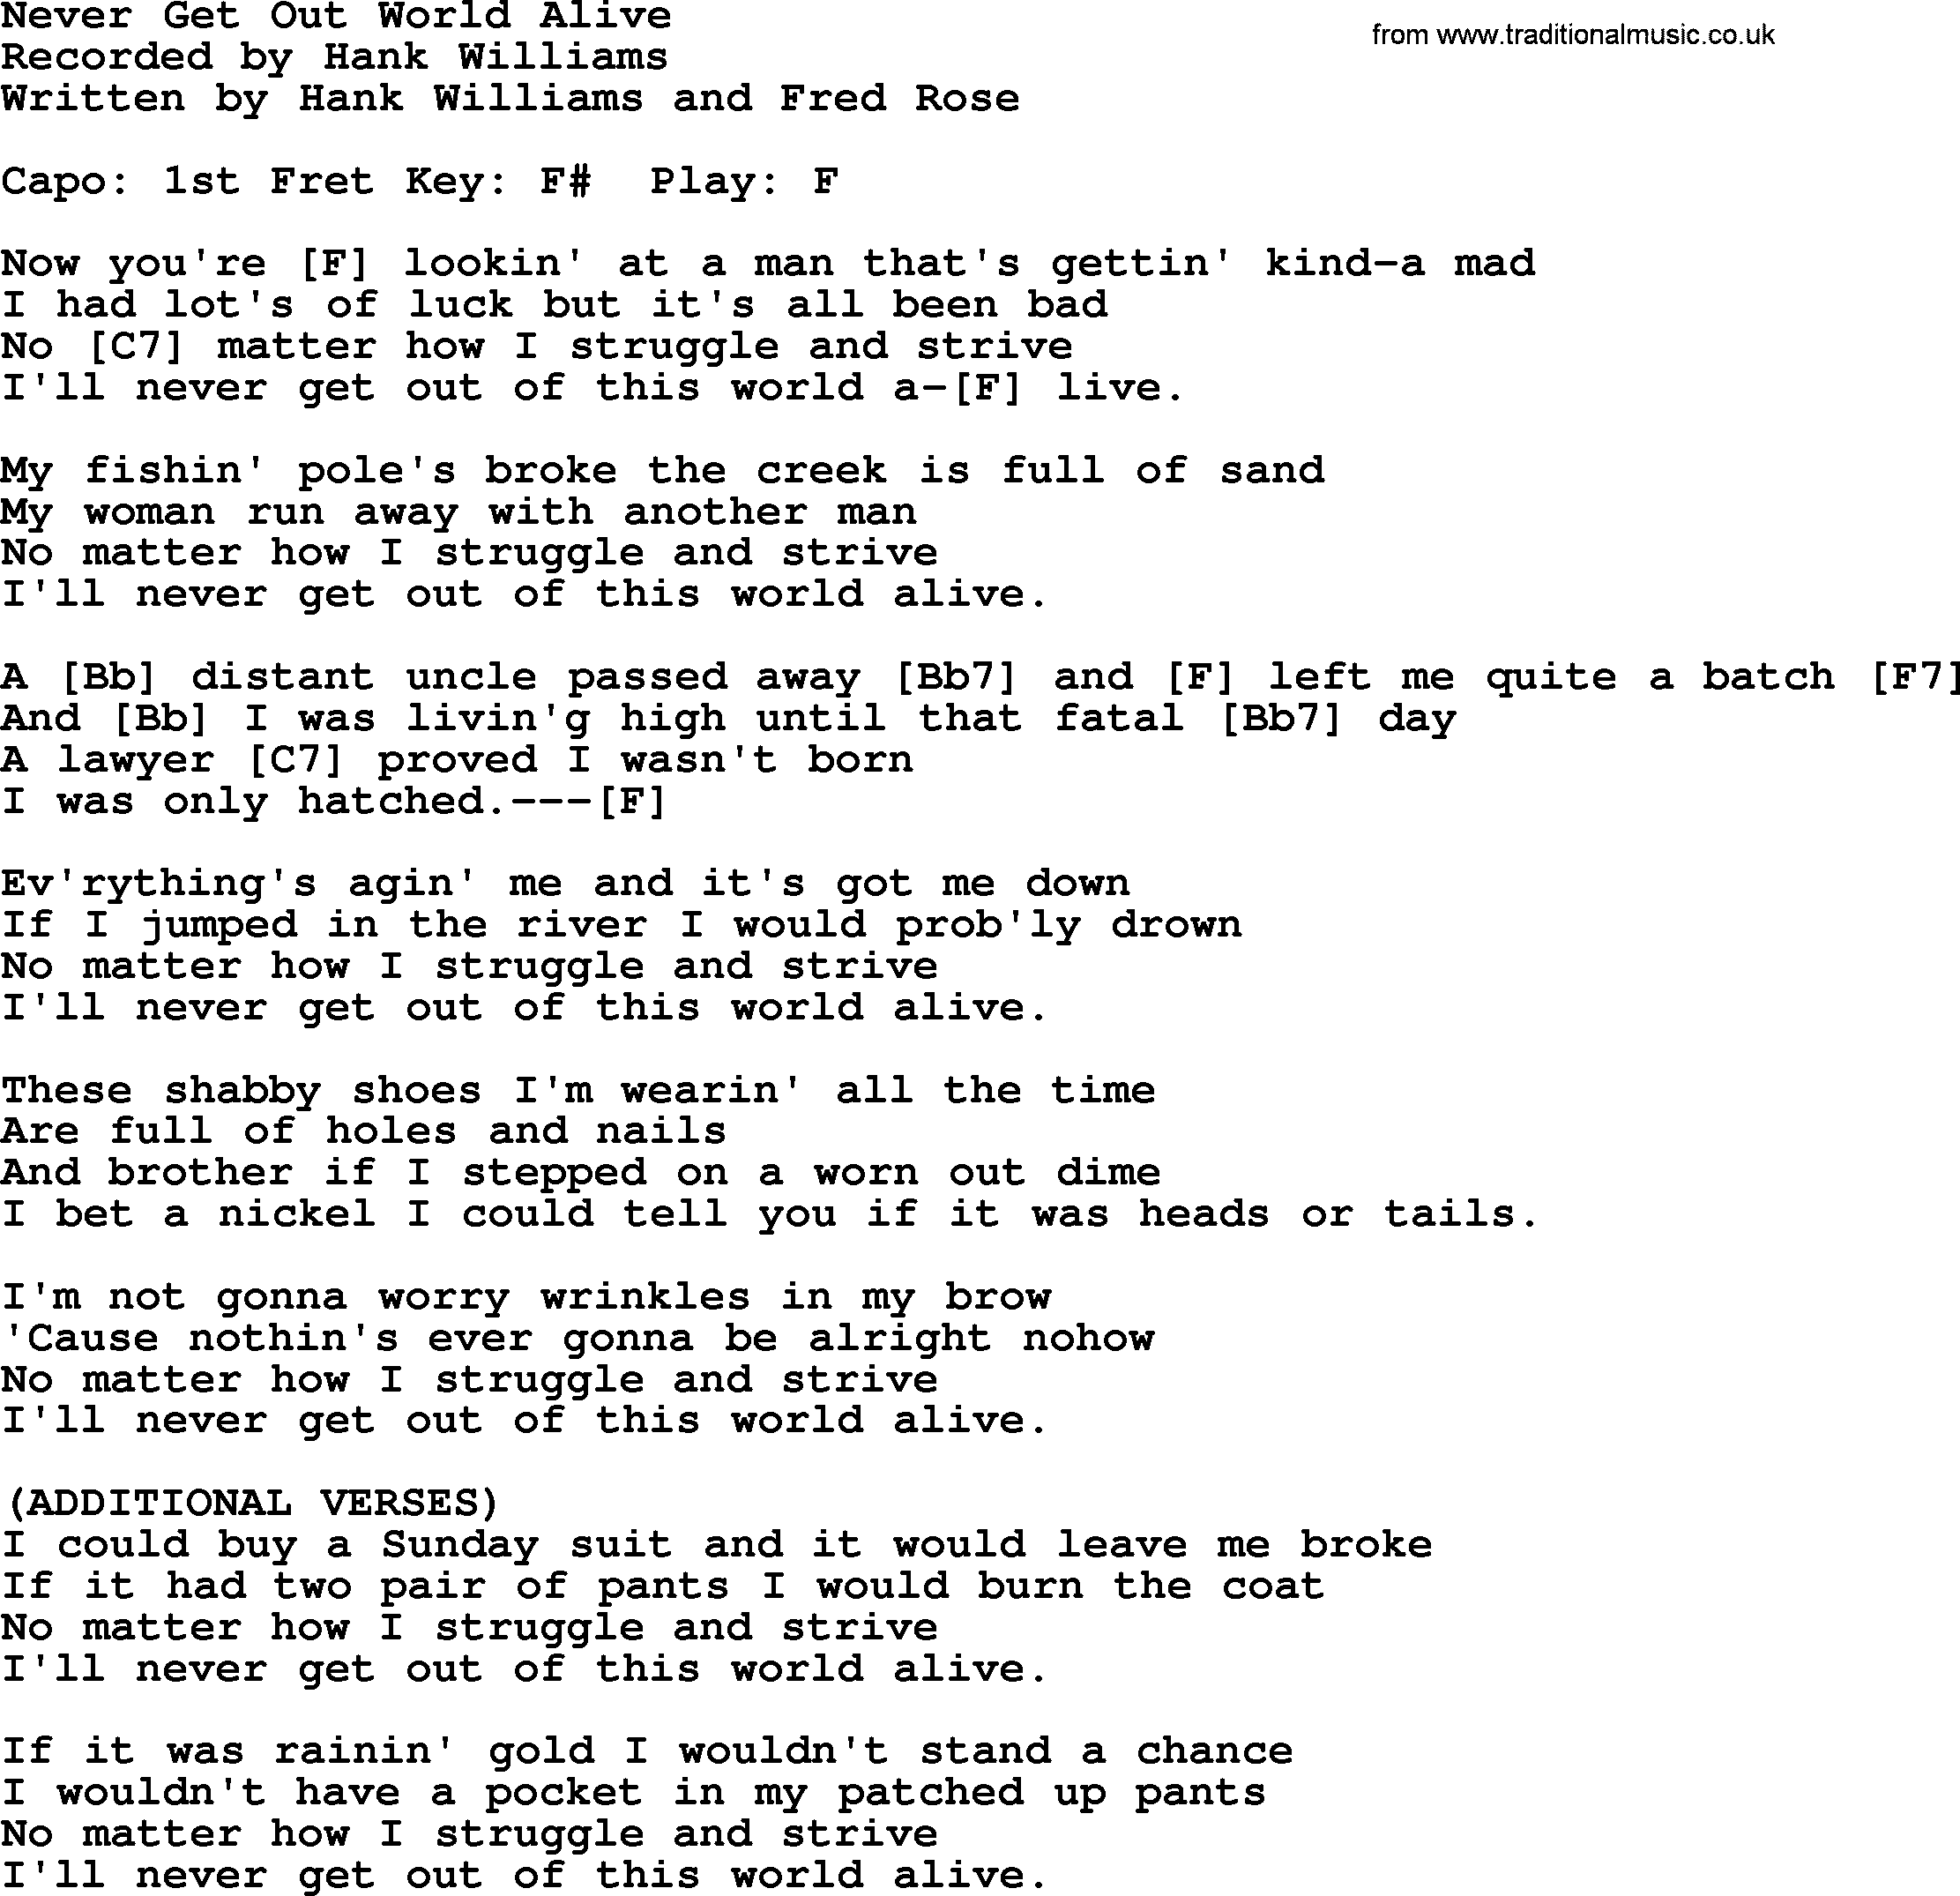 Hank Williams song: Never Get Out World Alive, lyrics and chords